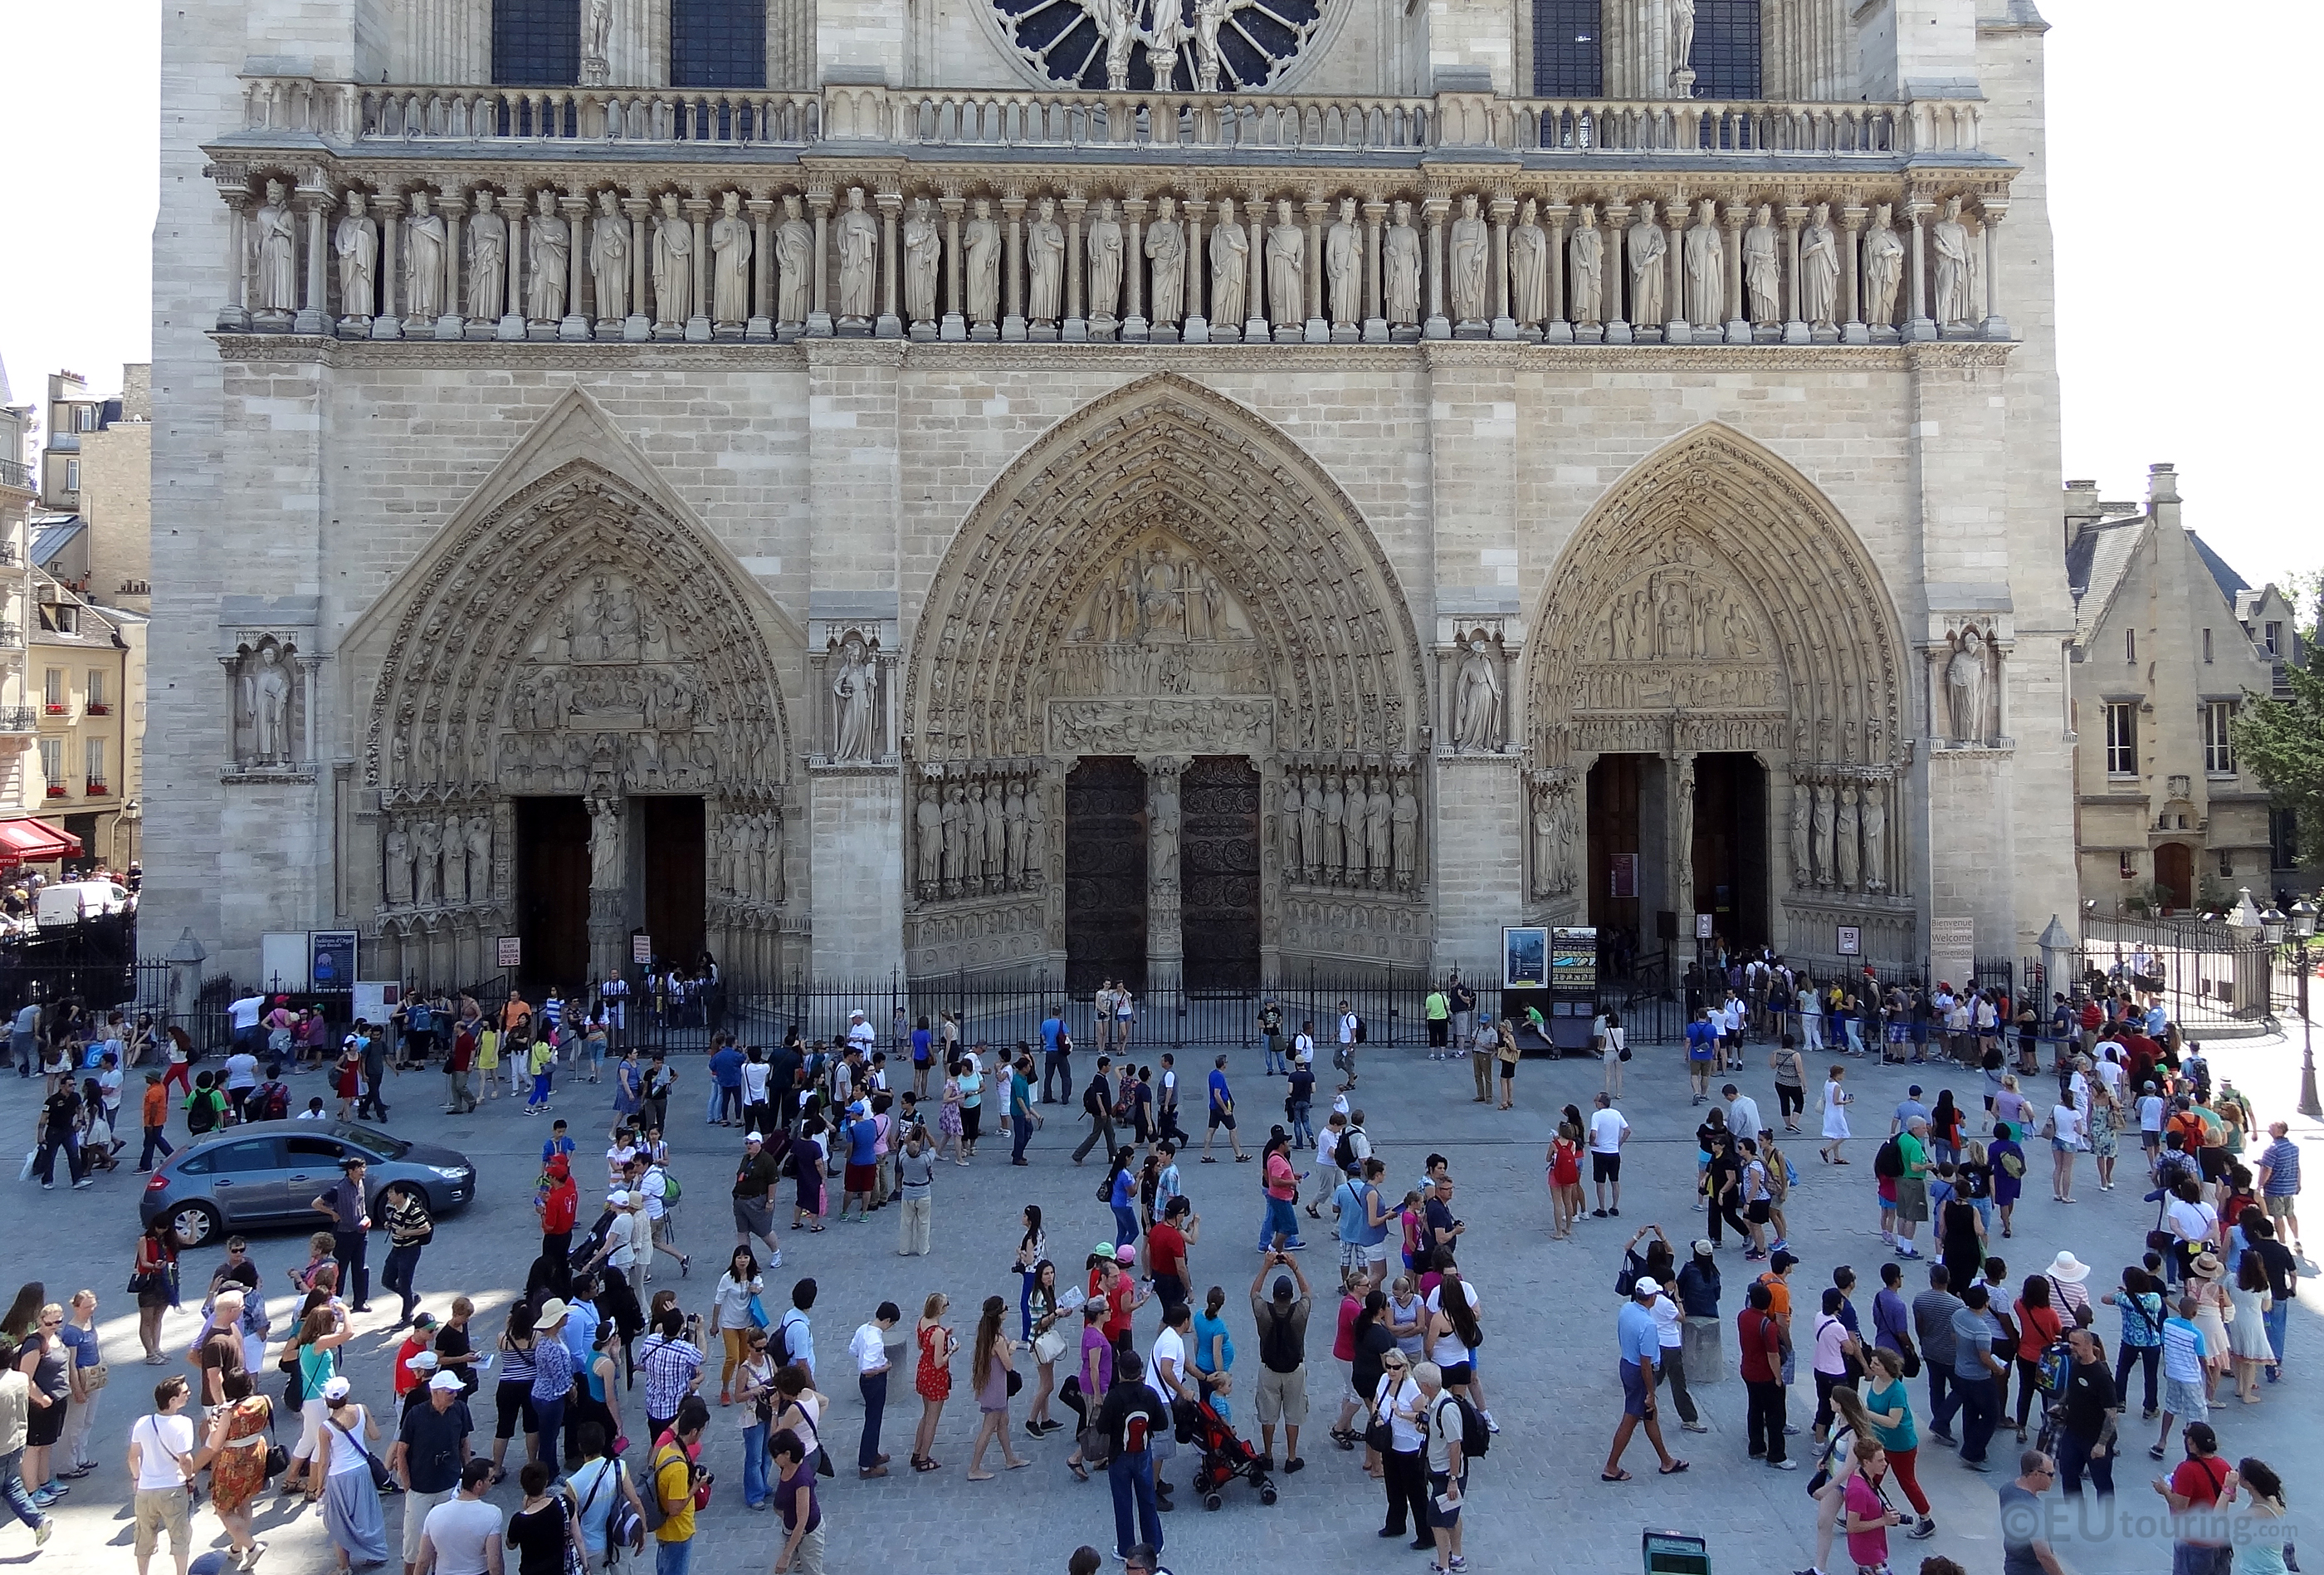 The front of the Notre Dame